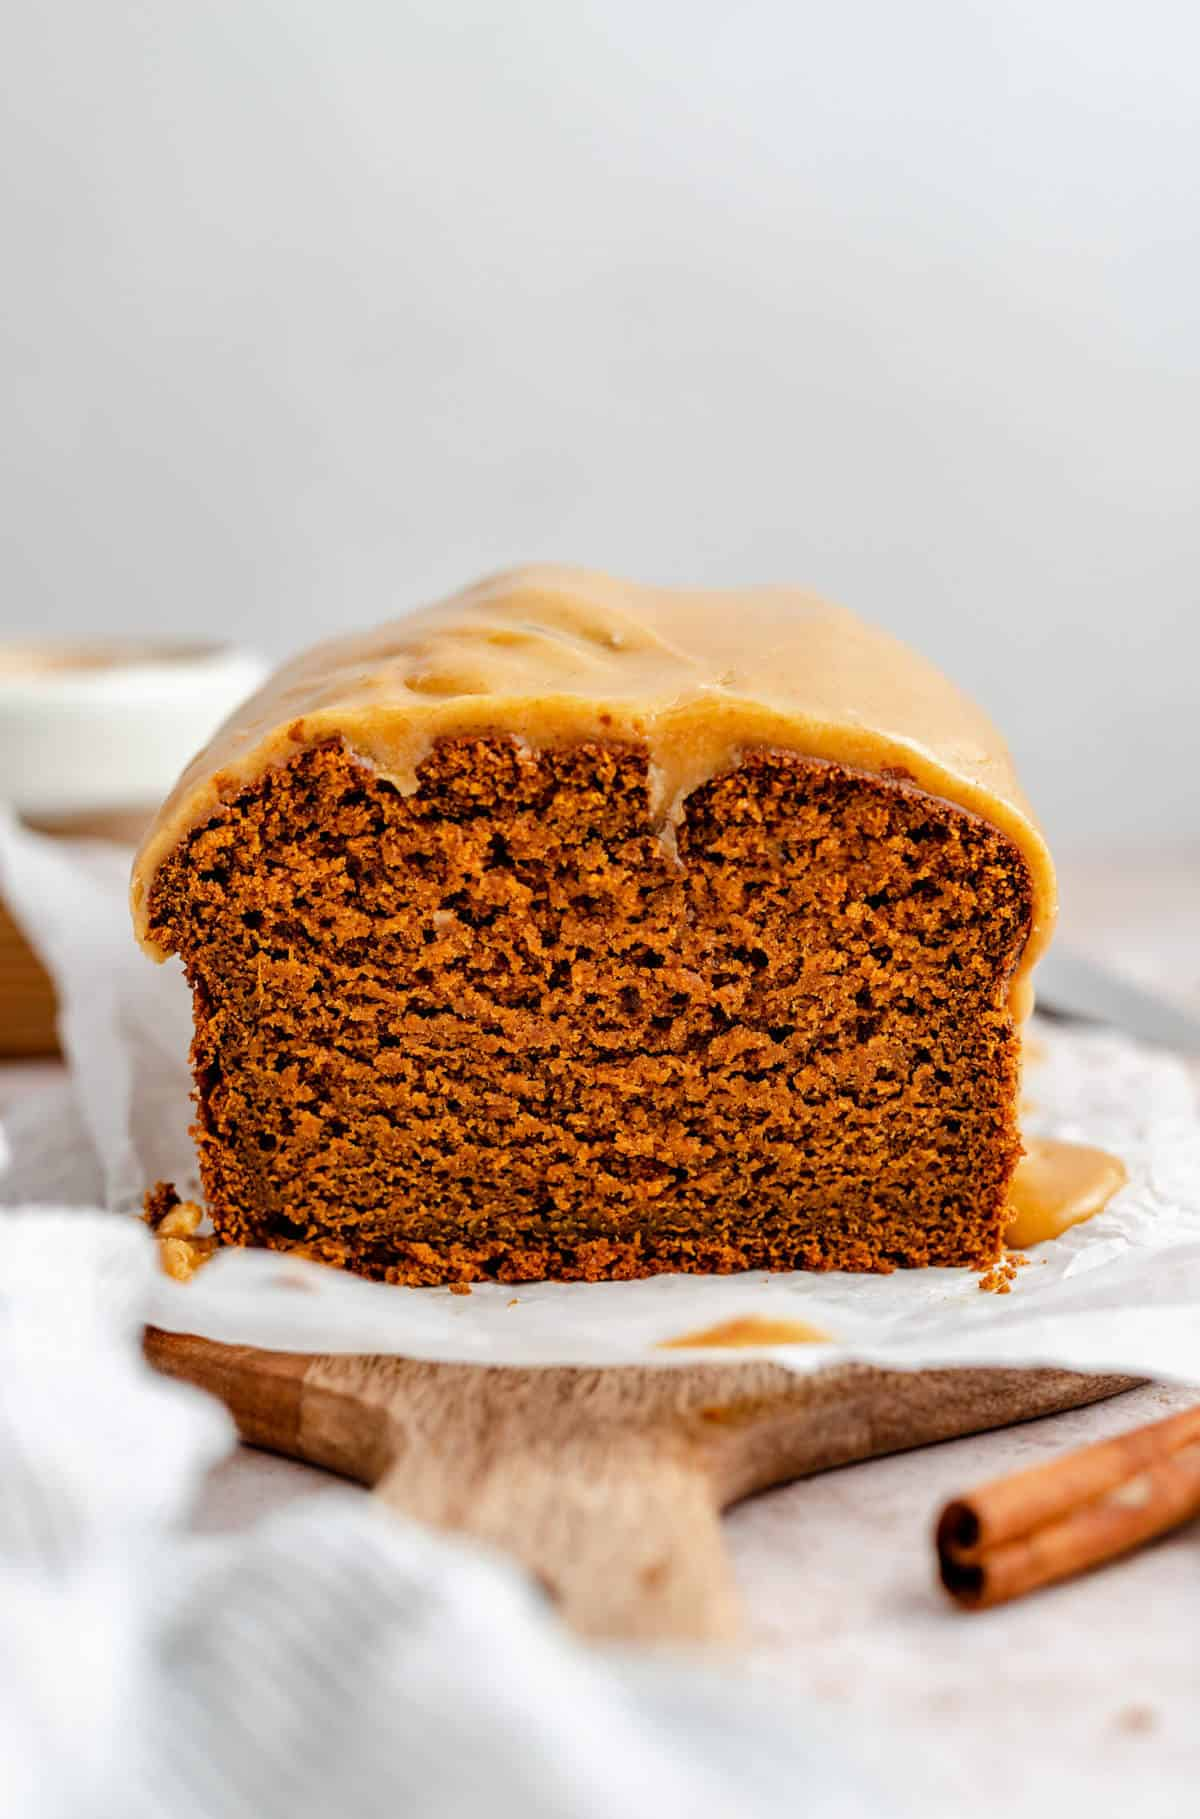 photo of the open sliced end of the pumpkin ginger bread loaf showing the texture of the bread up close